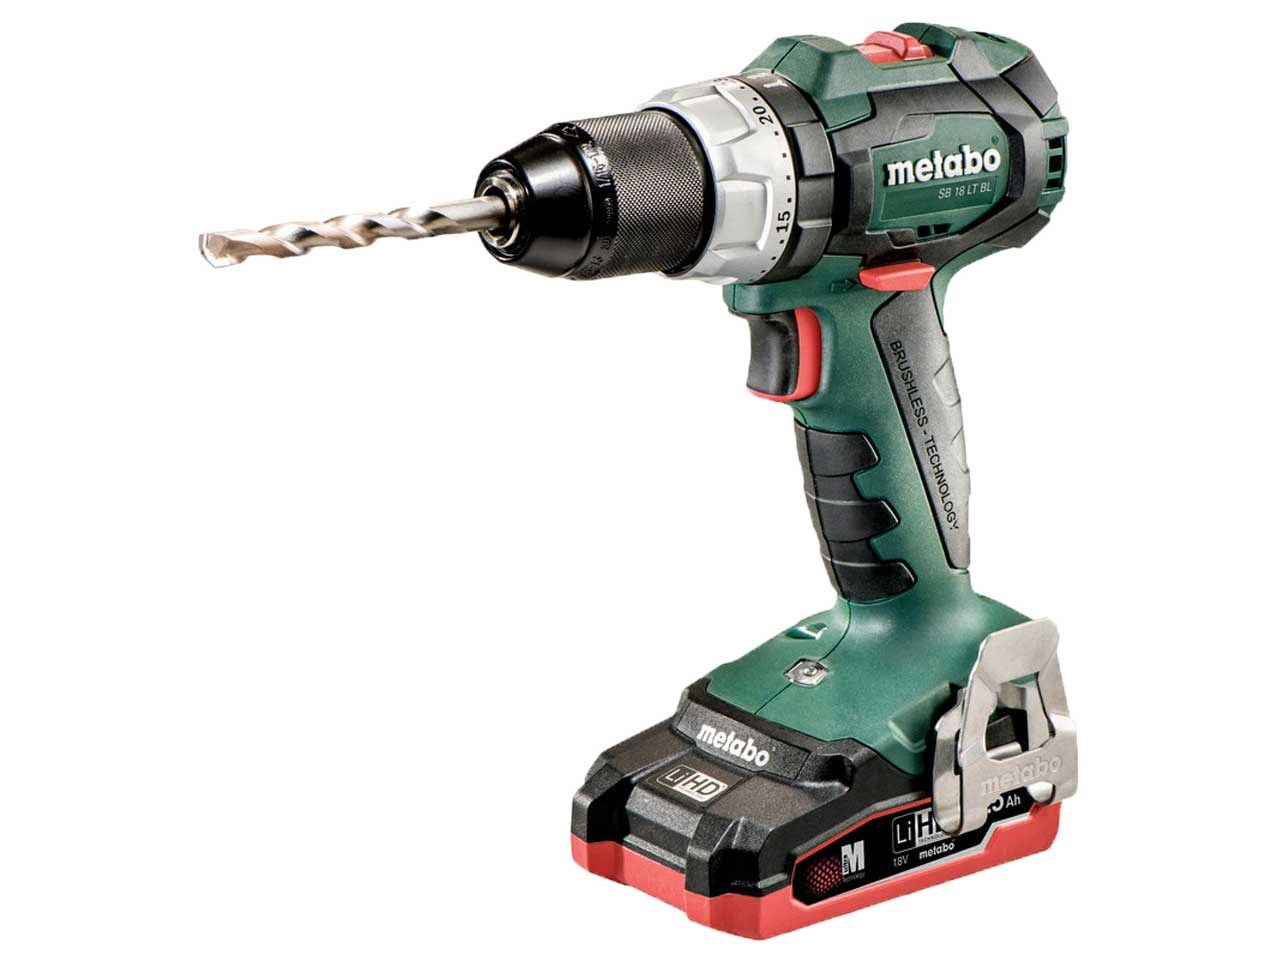 metabo sb 18 lt bl 18v lihd cordless impact drill. Black Bedroom Furniture Sets. Home Design Ideas